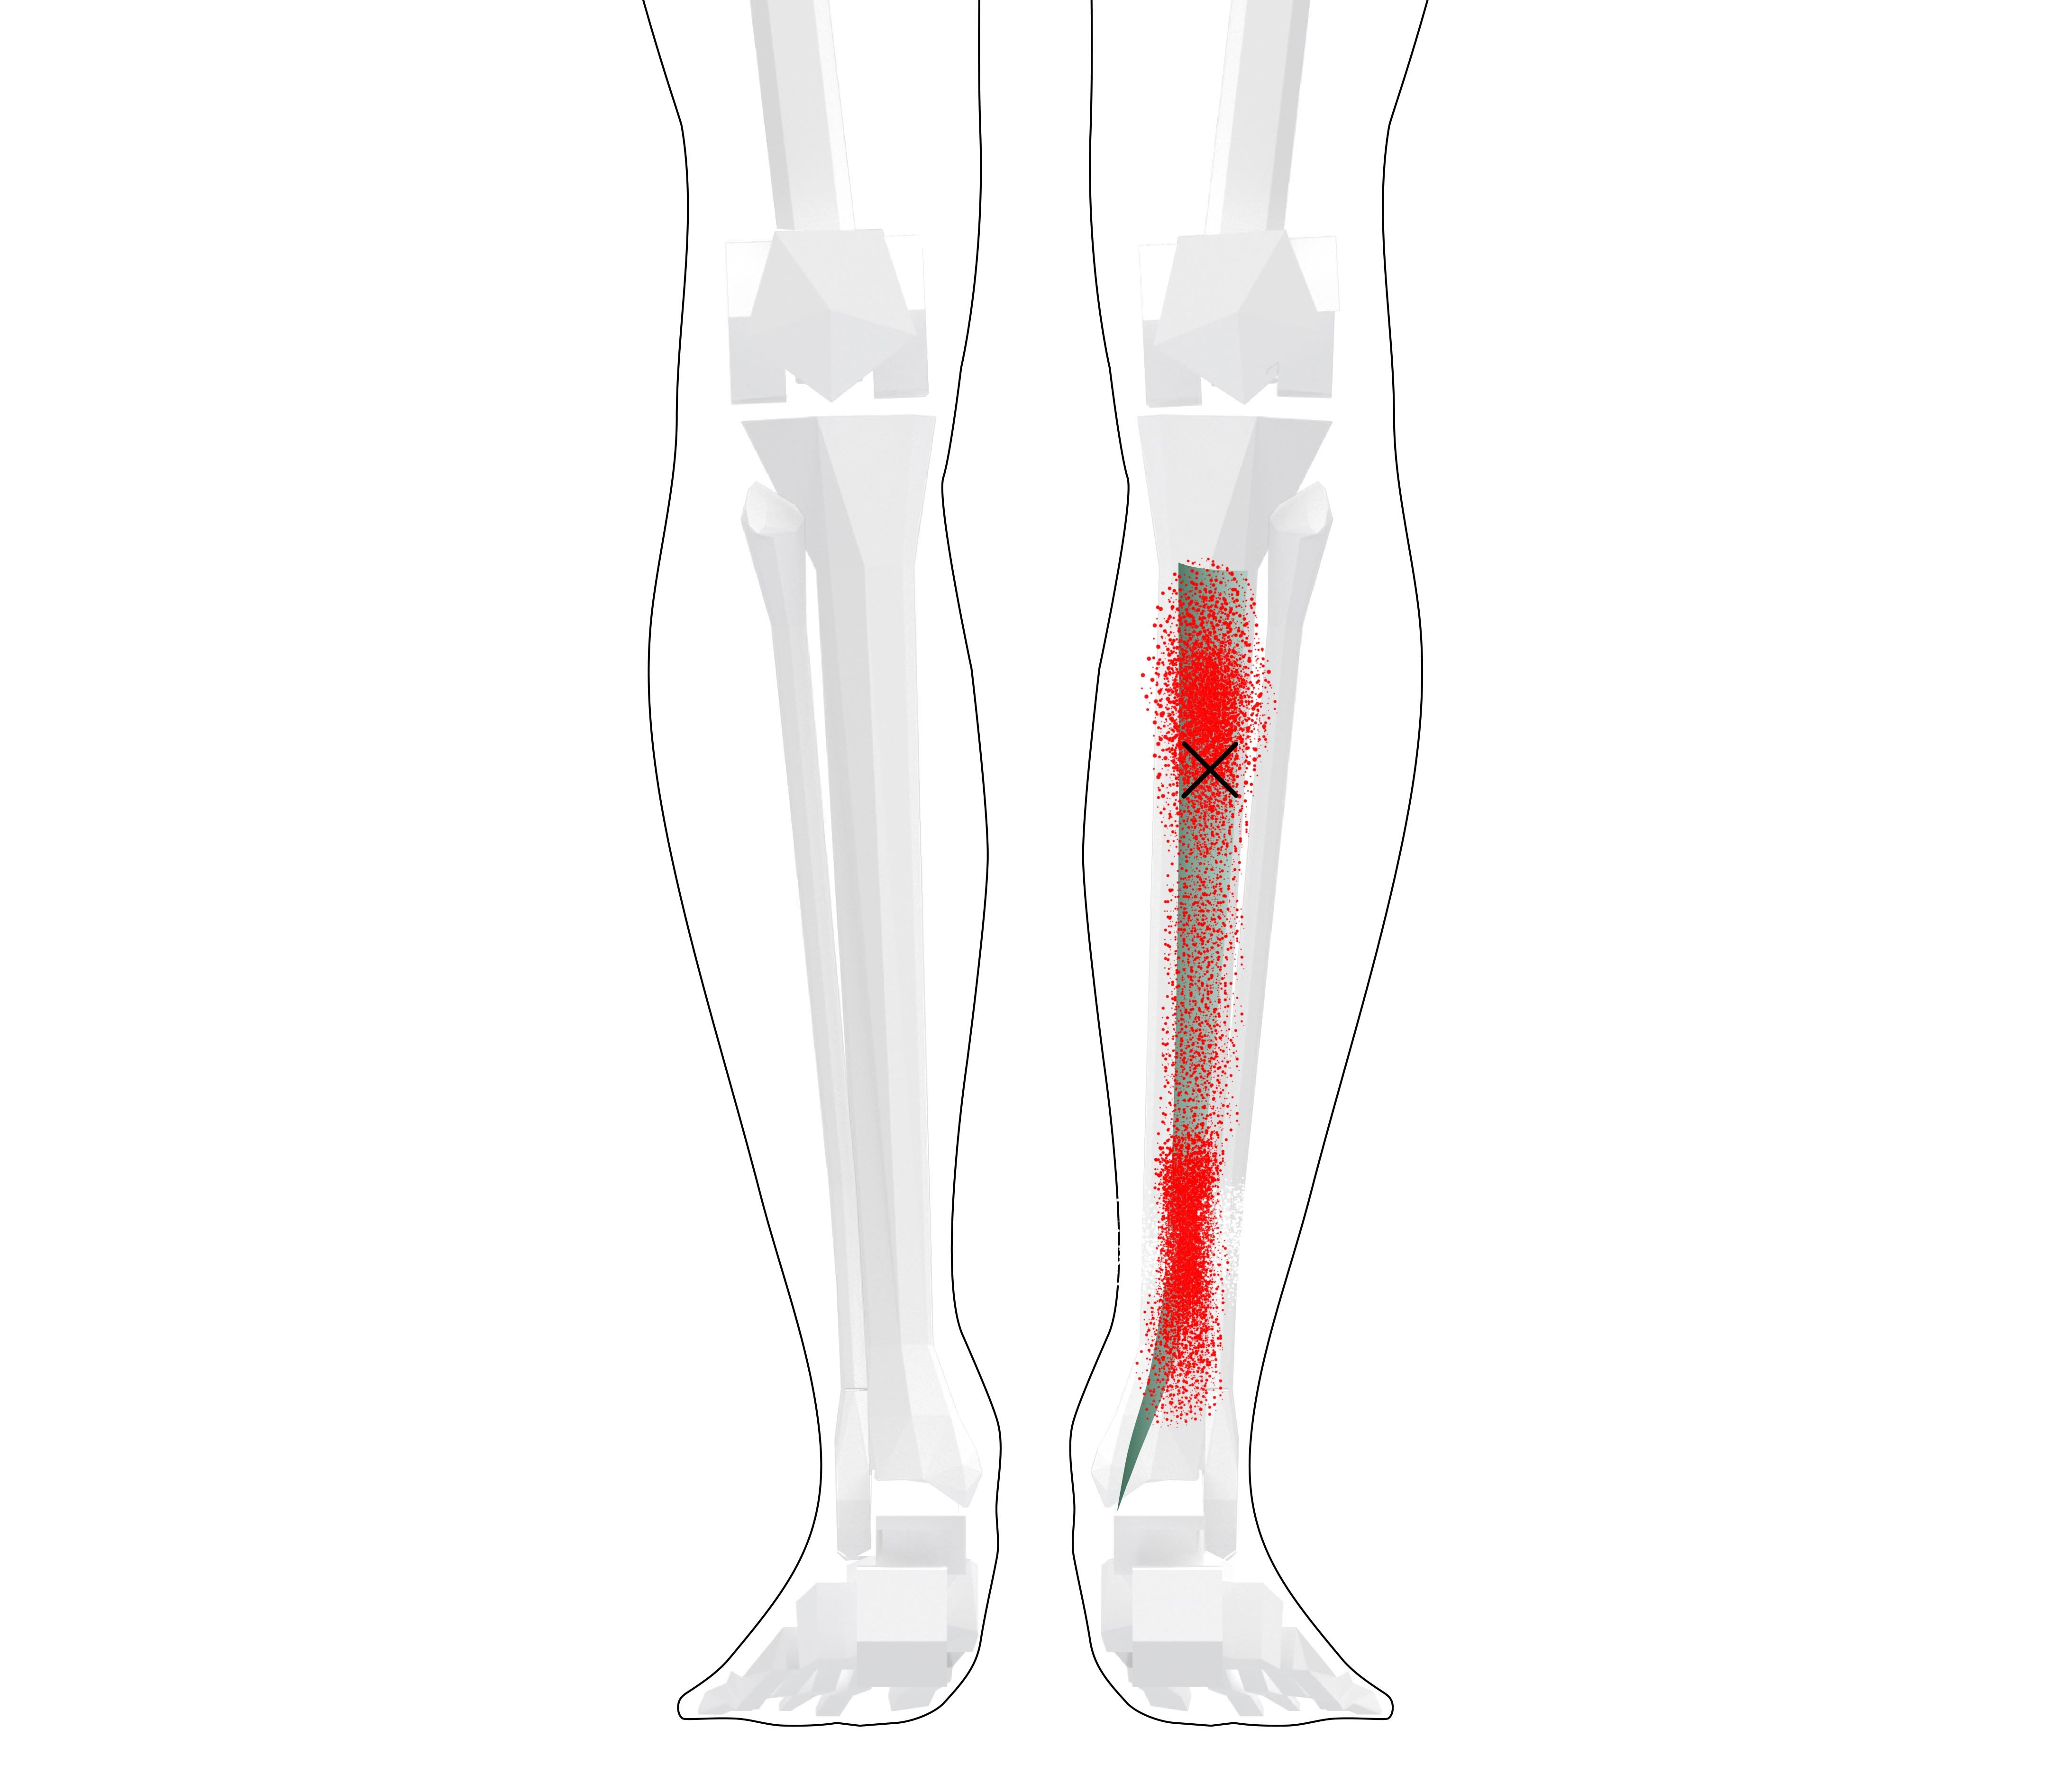 Tibialis Posterior Trigger Points